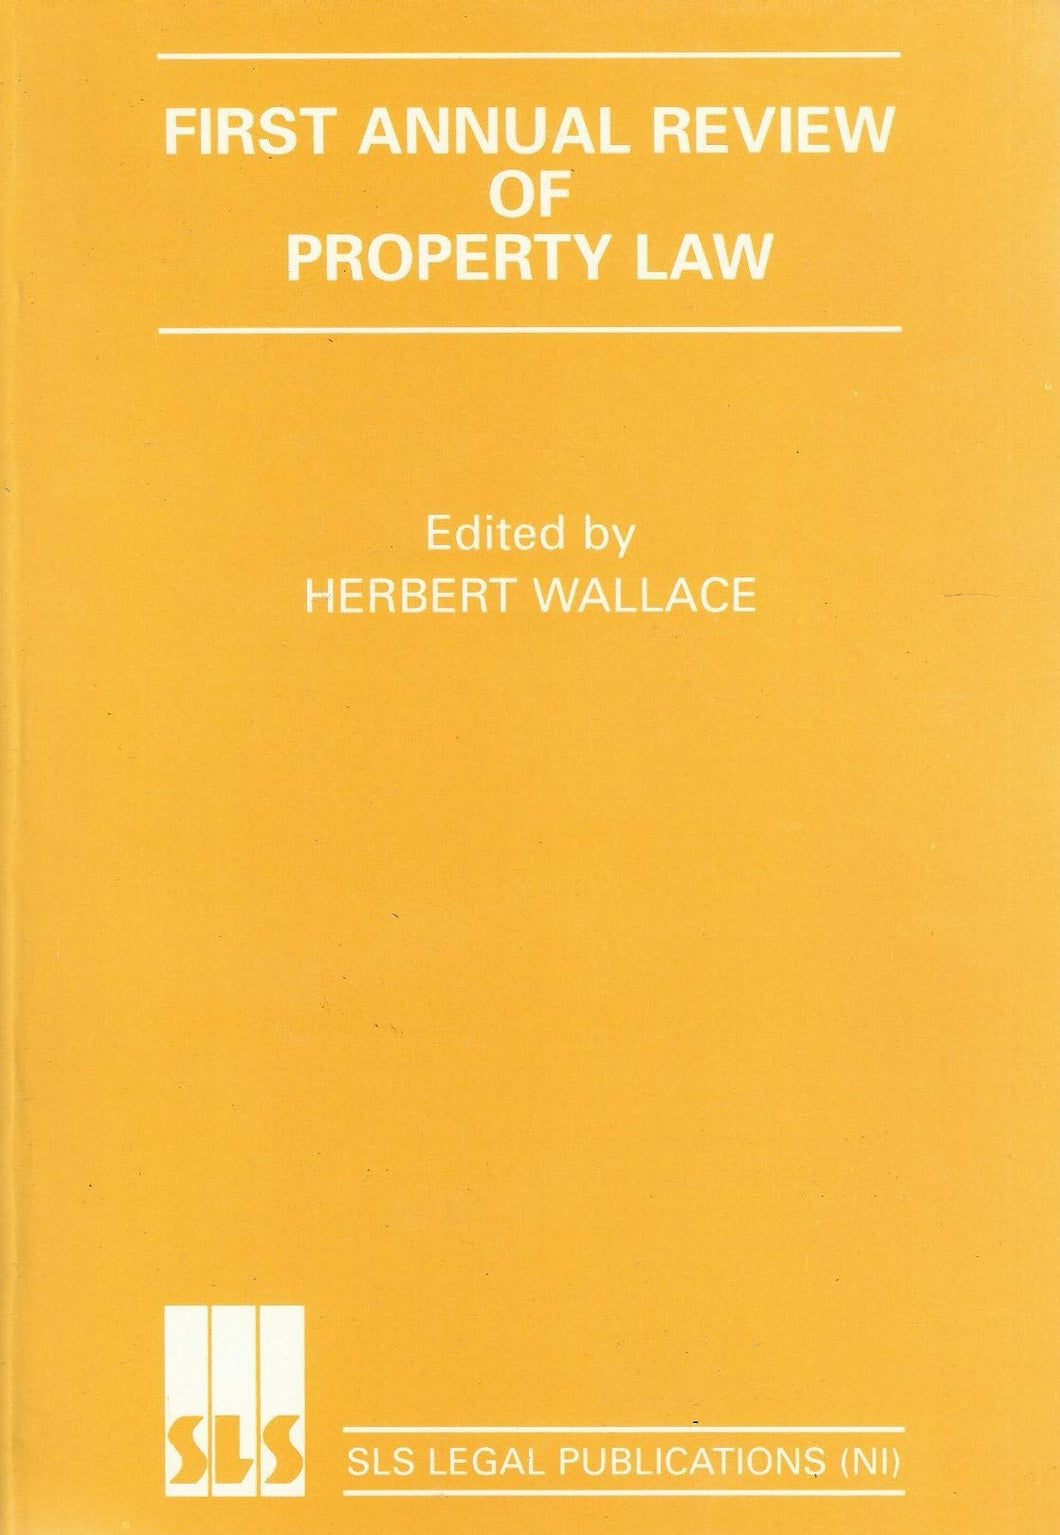 First Annual Review of Property Law (Servicing the legal system programme)